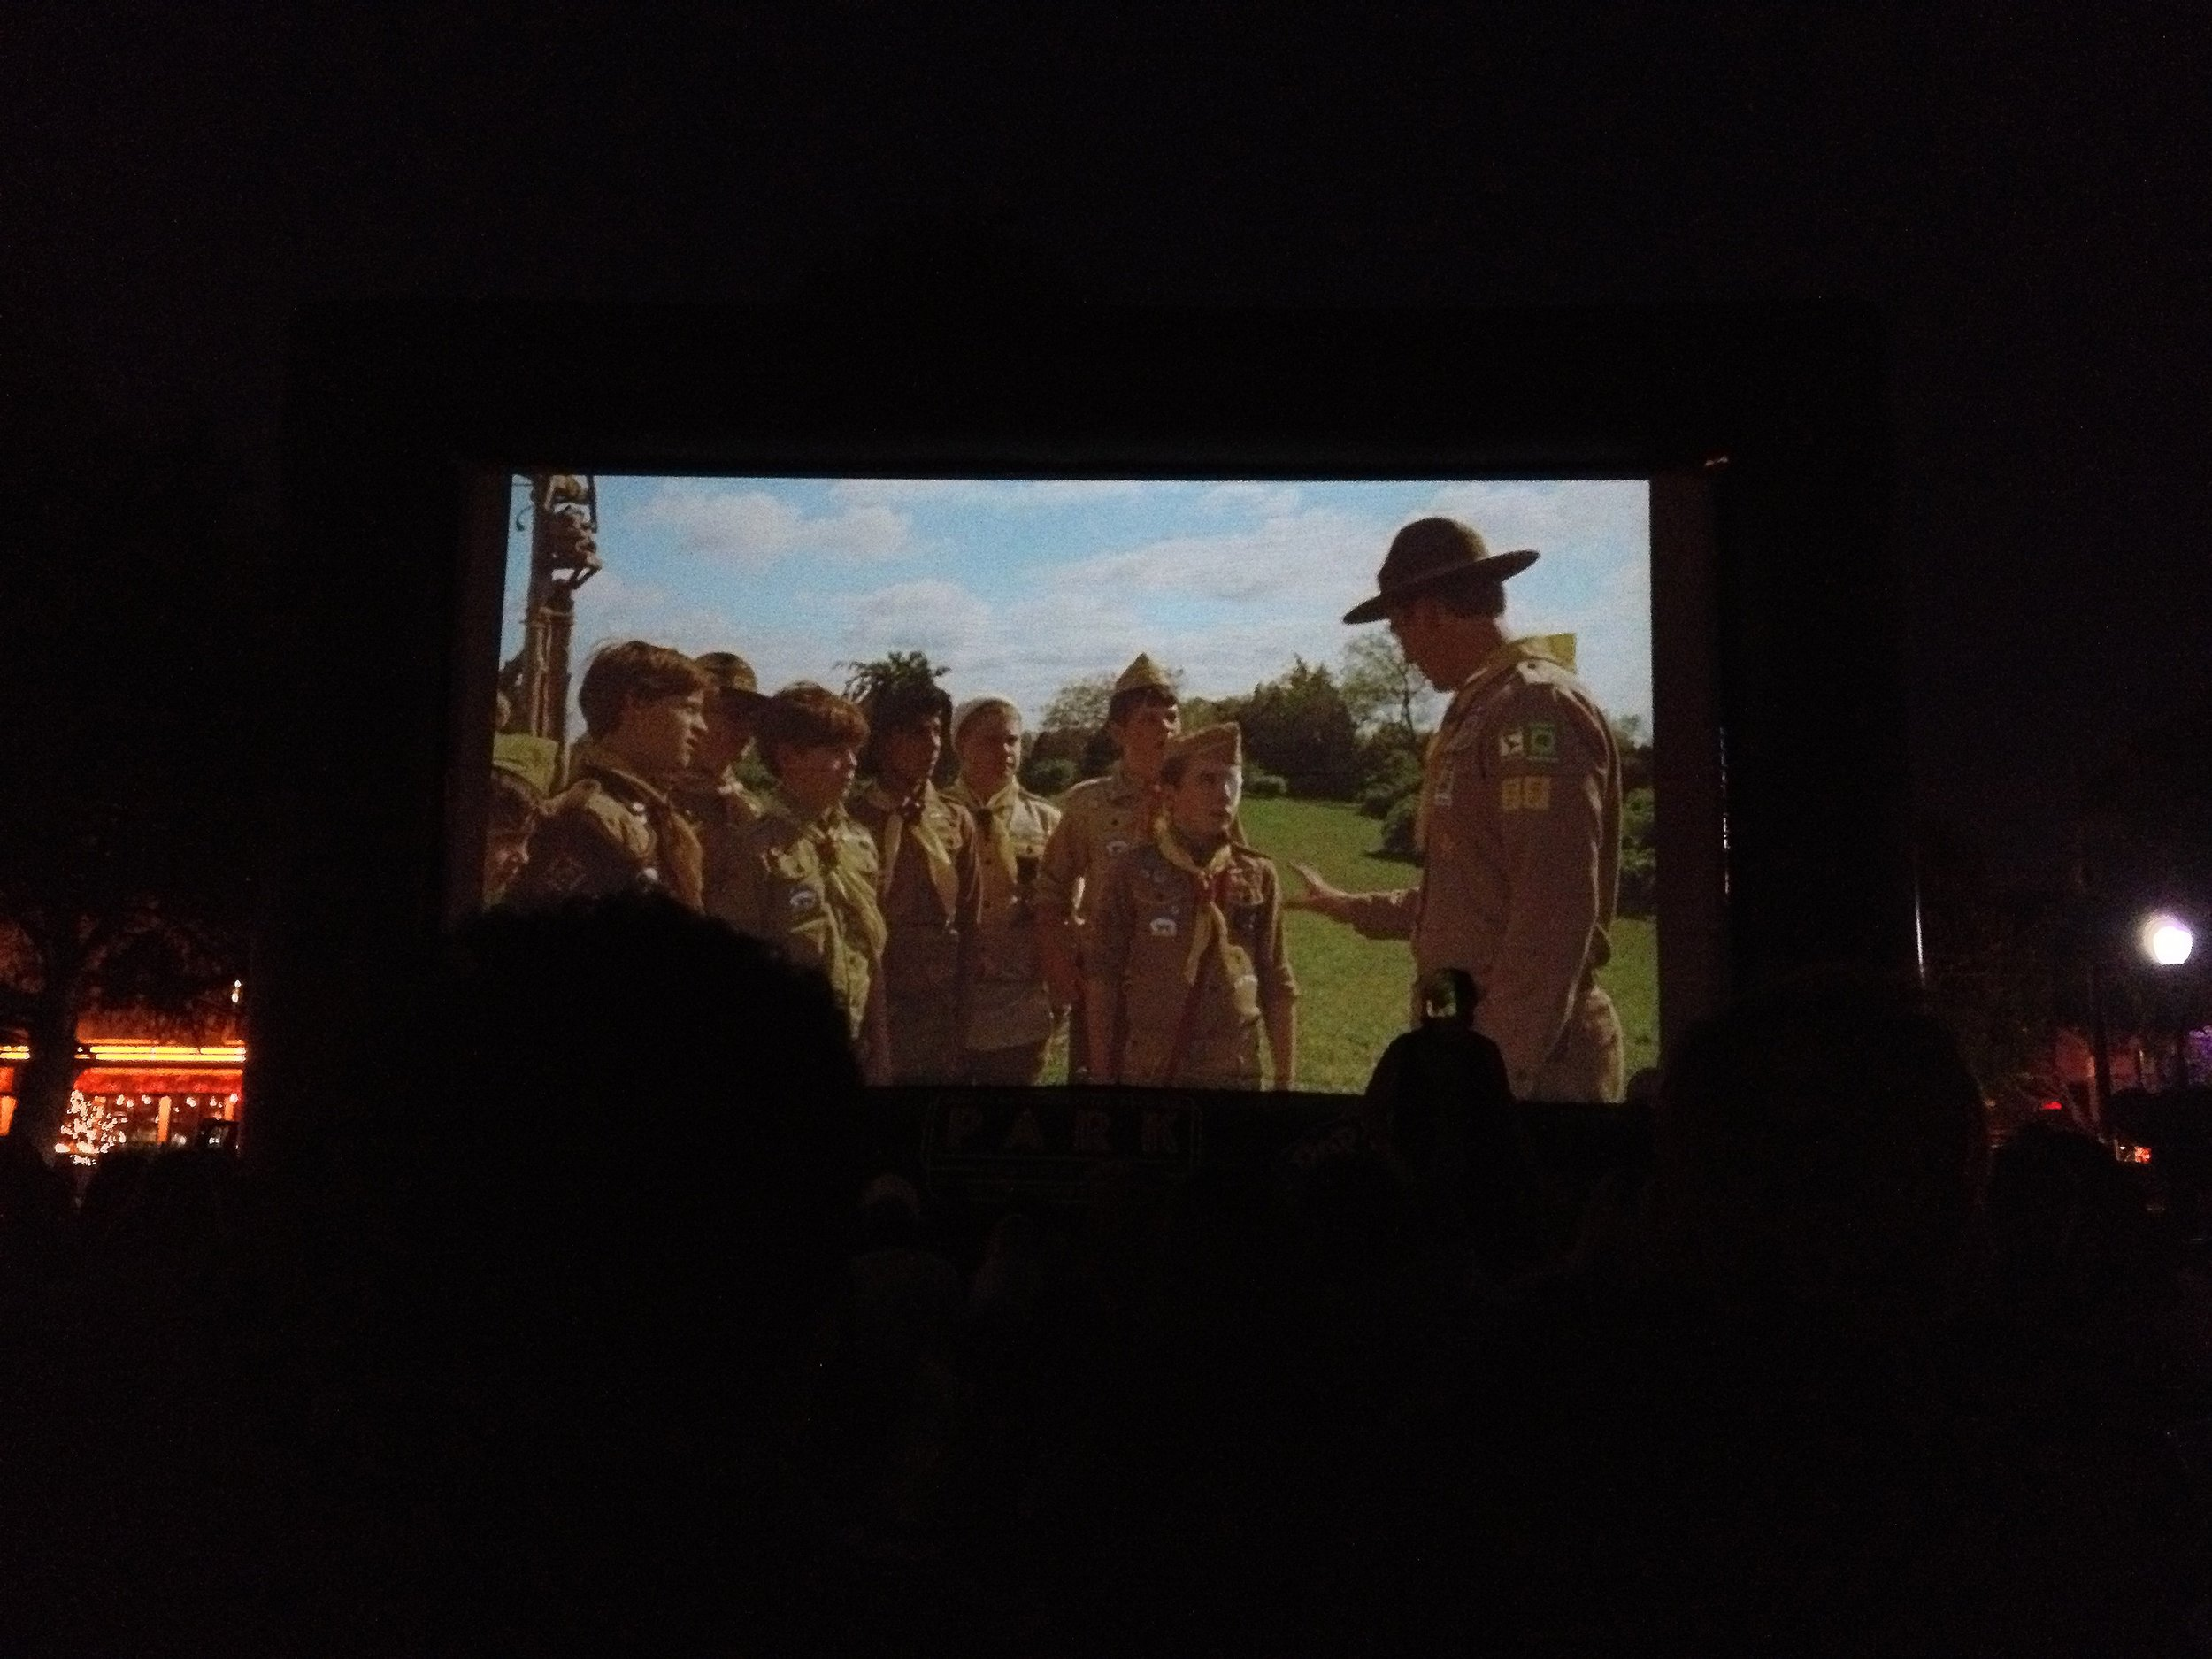 Honestly, one of the best things about San Francisco. An unexpected movie in the park. Moonrise Kingdom, of course.